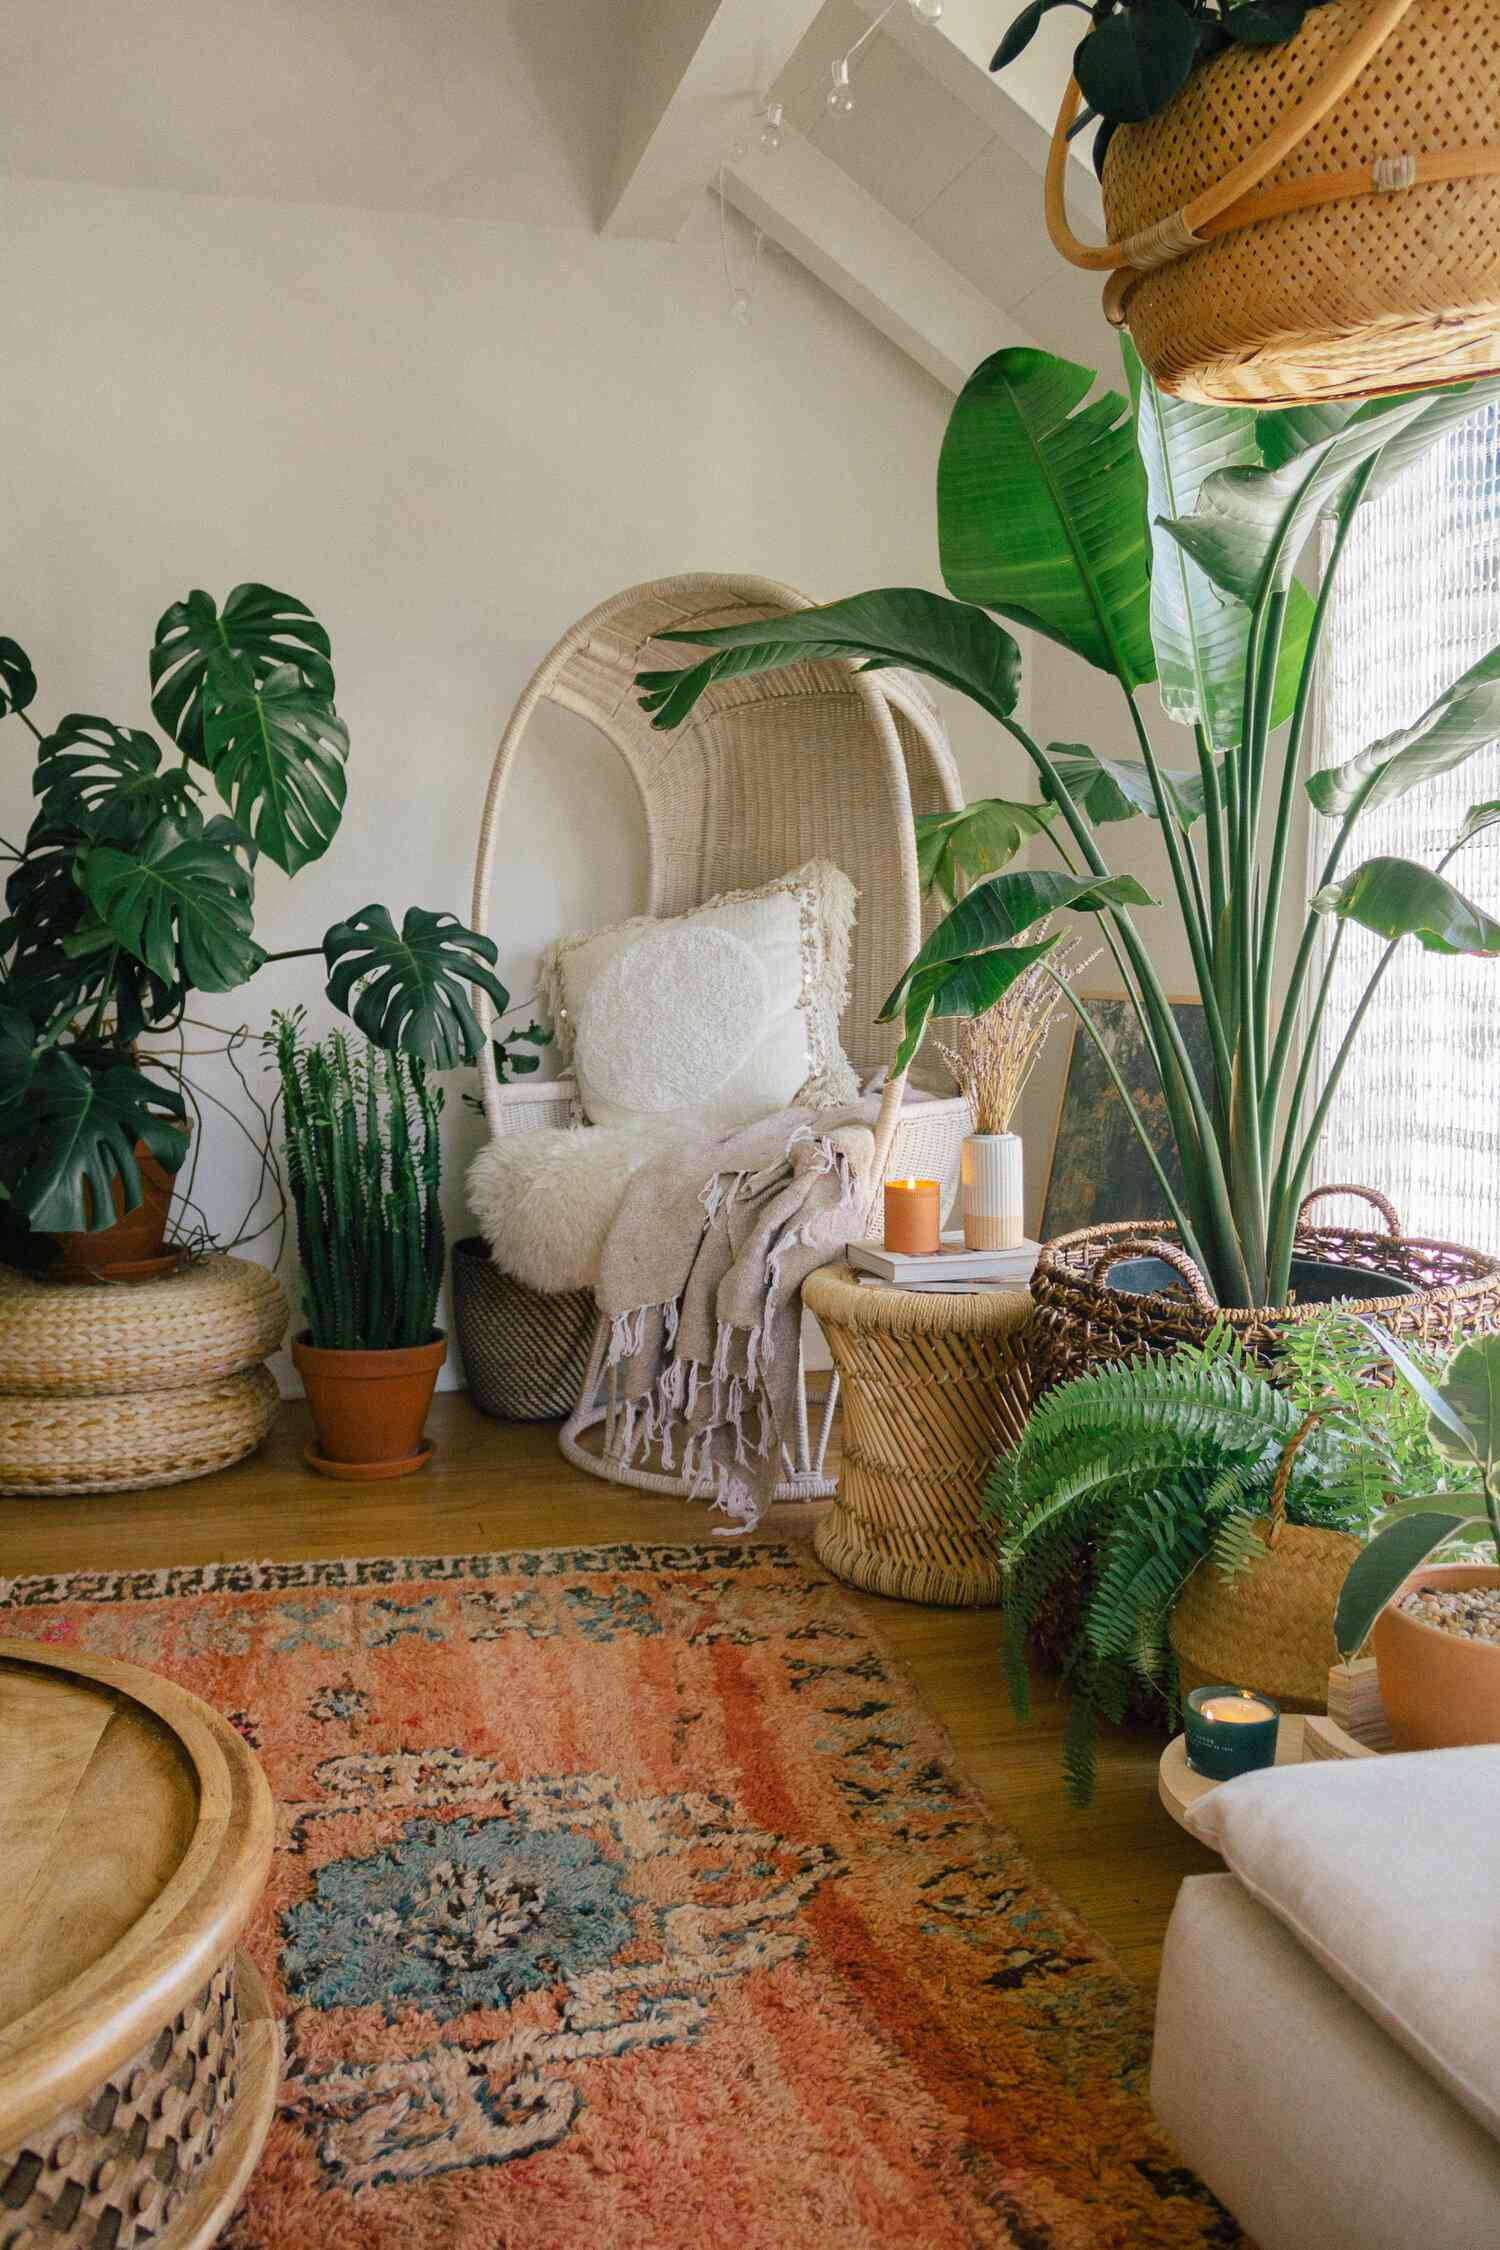 Boho living room with lots of plants